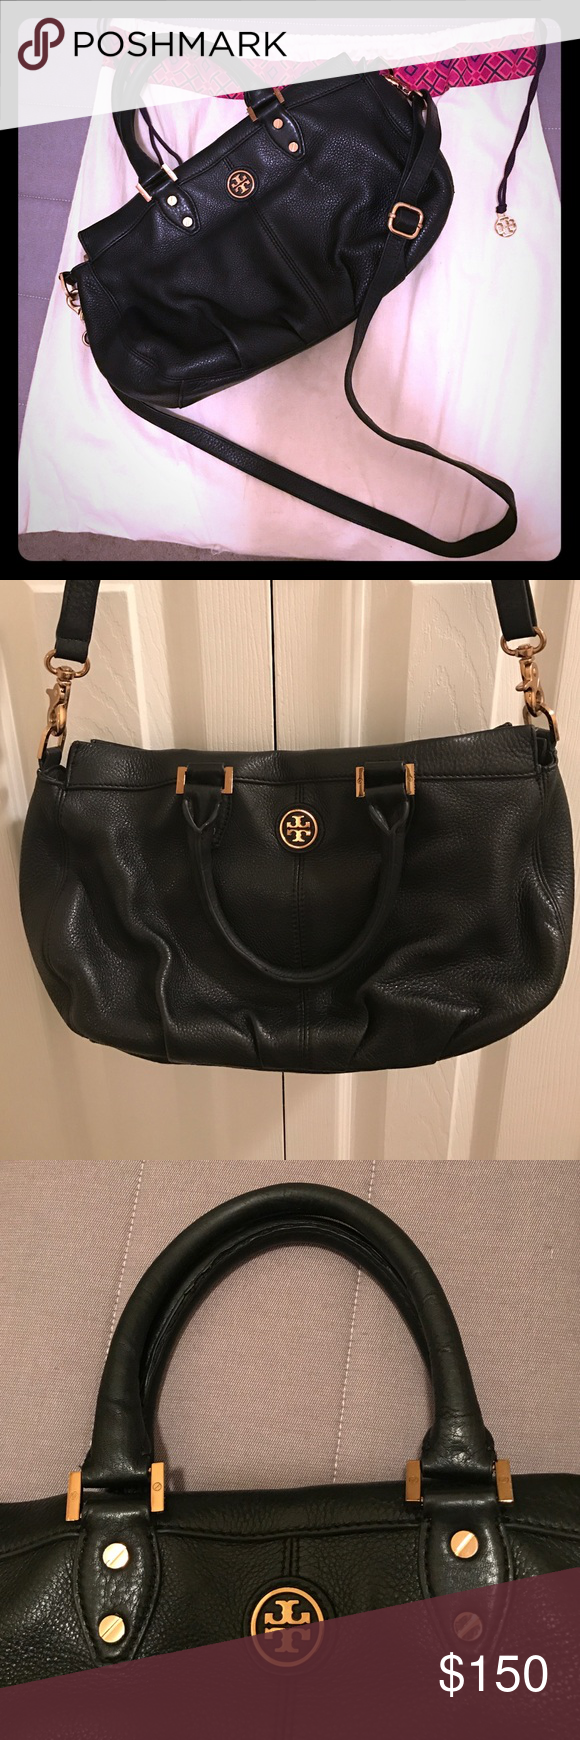 Tory Burch Black Crossbody Bag Authentic preowned Tory Burch black crossbody bag with adjustable strap. Exterior is in good condition. The inside has pen markings and does show some wear. Please look at photos. Comes with dust bag. Roughly...  Height: 8 inches, Width: 13.5 inches, Depth: 5 inches, Strap Drop: 5 inches Tory Burch Bags Crossbody Bags